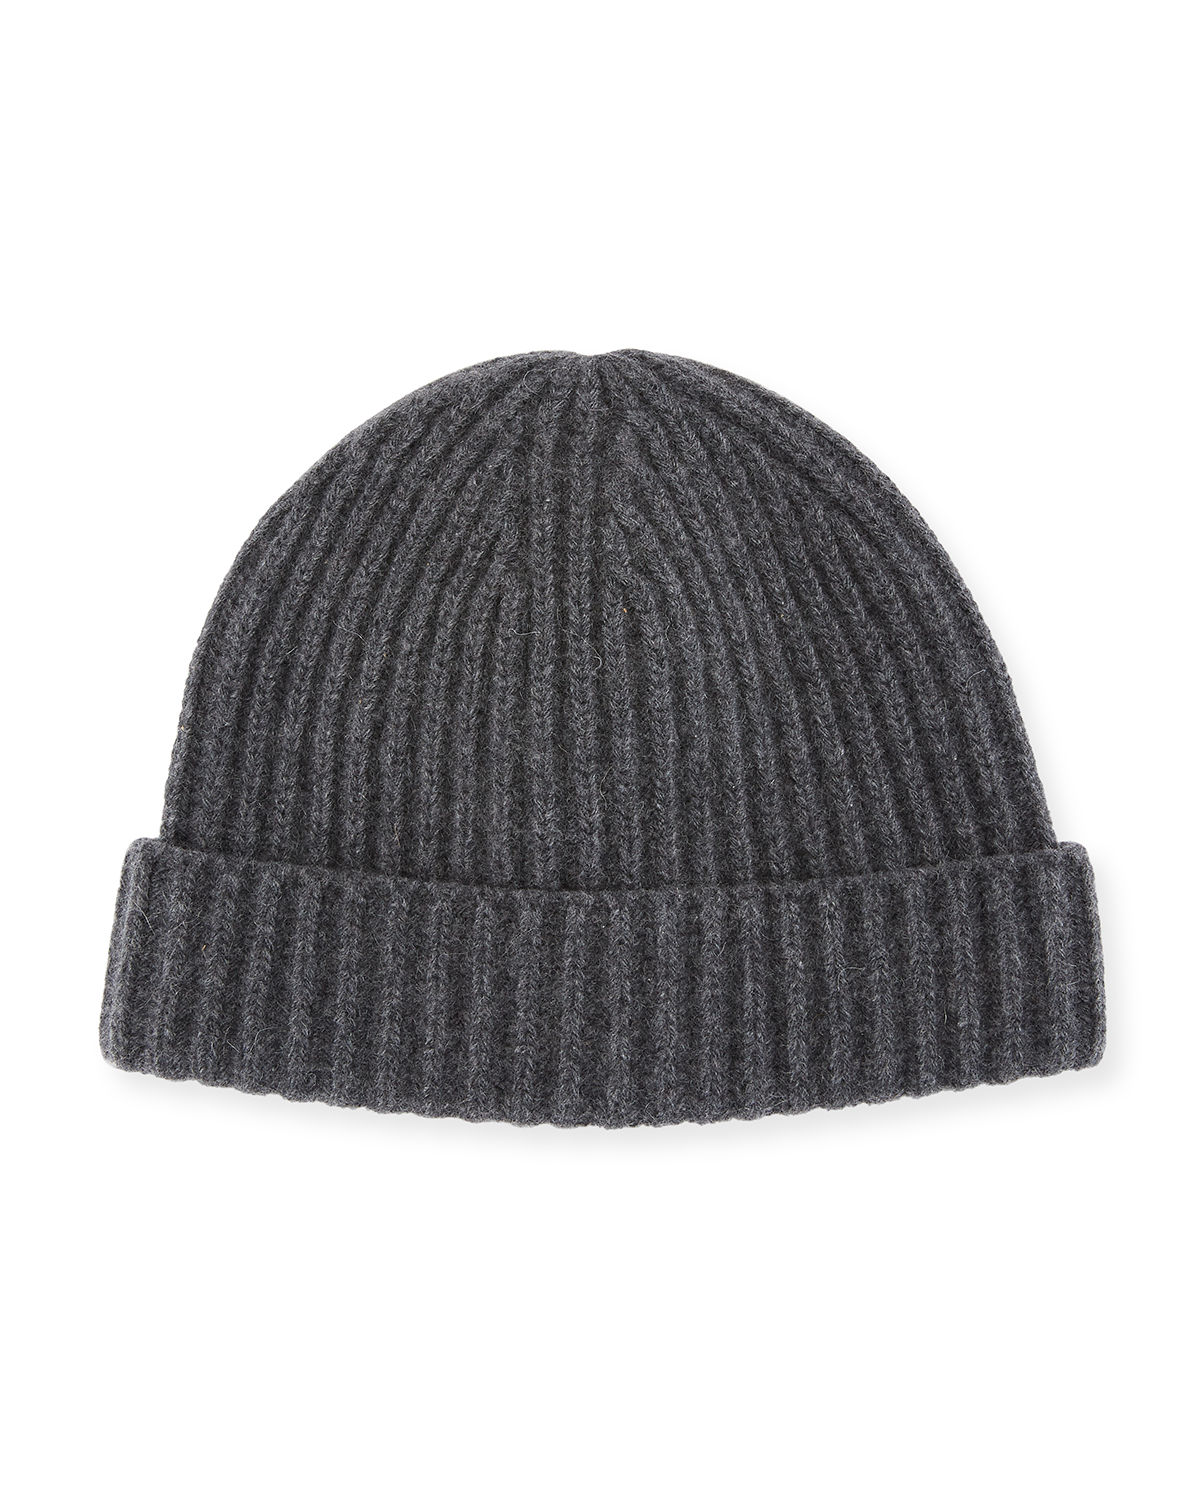 a393968847ace Portolano Men s Ribbed Cashmere Beanie Hat